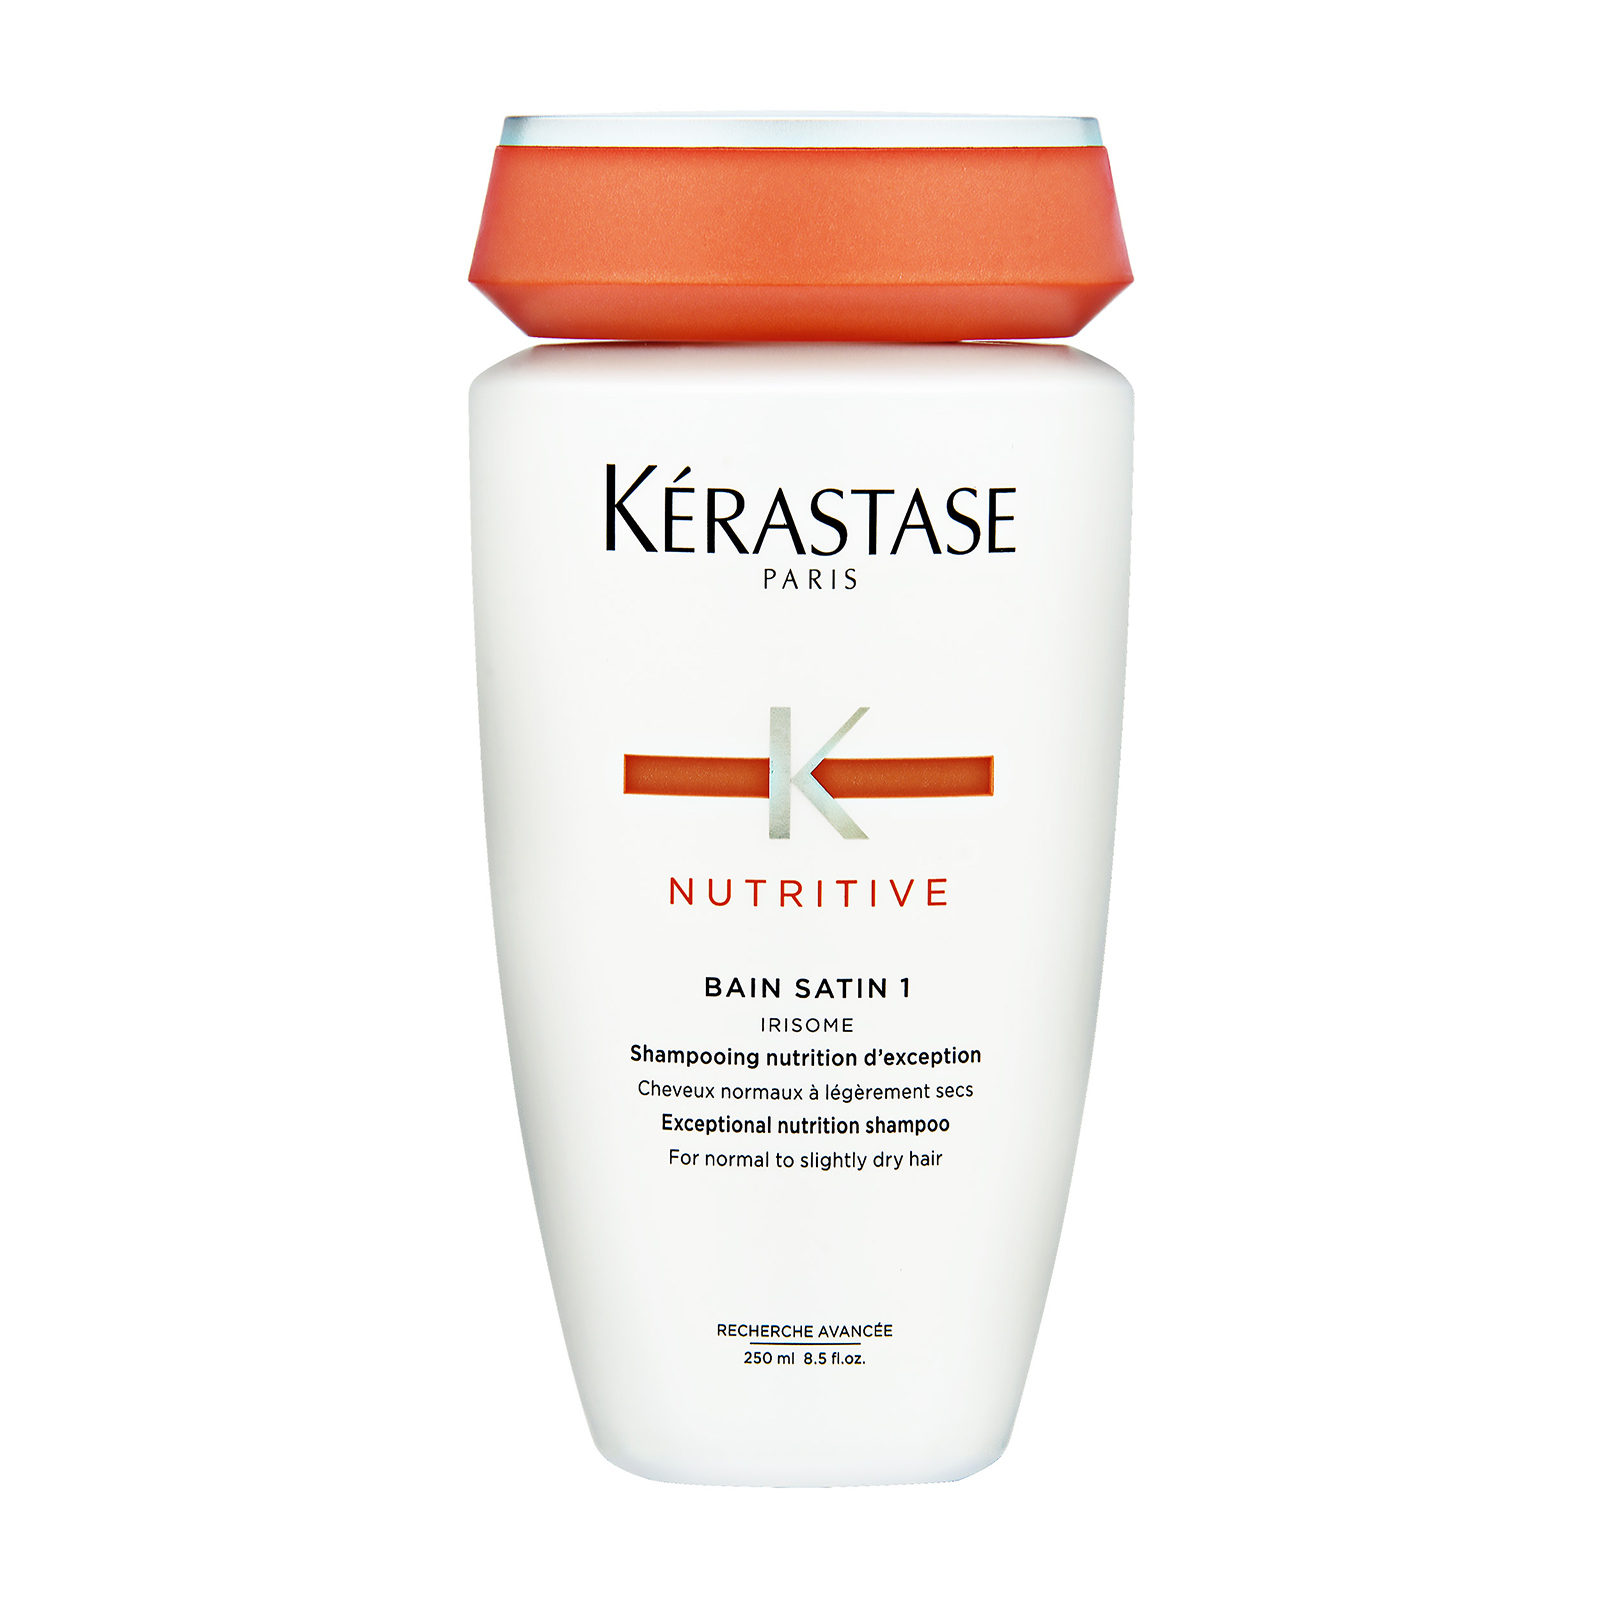 Kérastase Paris Nutritive  Bain Satin 1 Irisome Exceptional Nutrition Shampoo (For Normal To Slightly Dry Hair) 8.5oz, 250ml